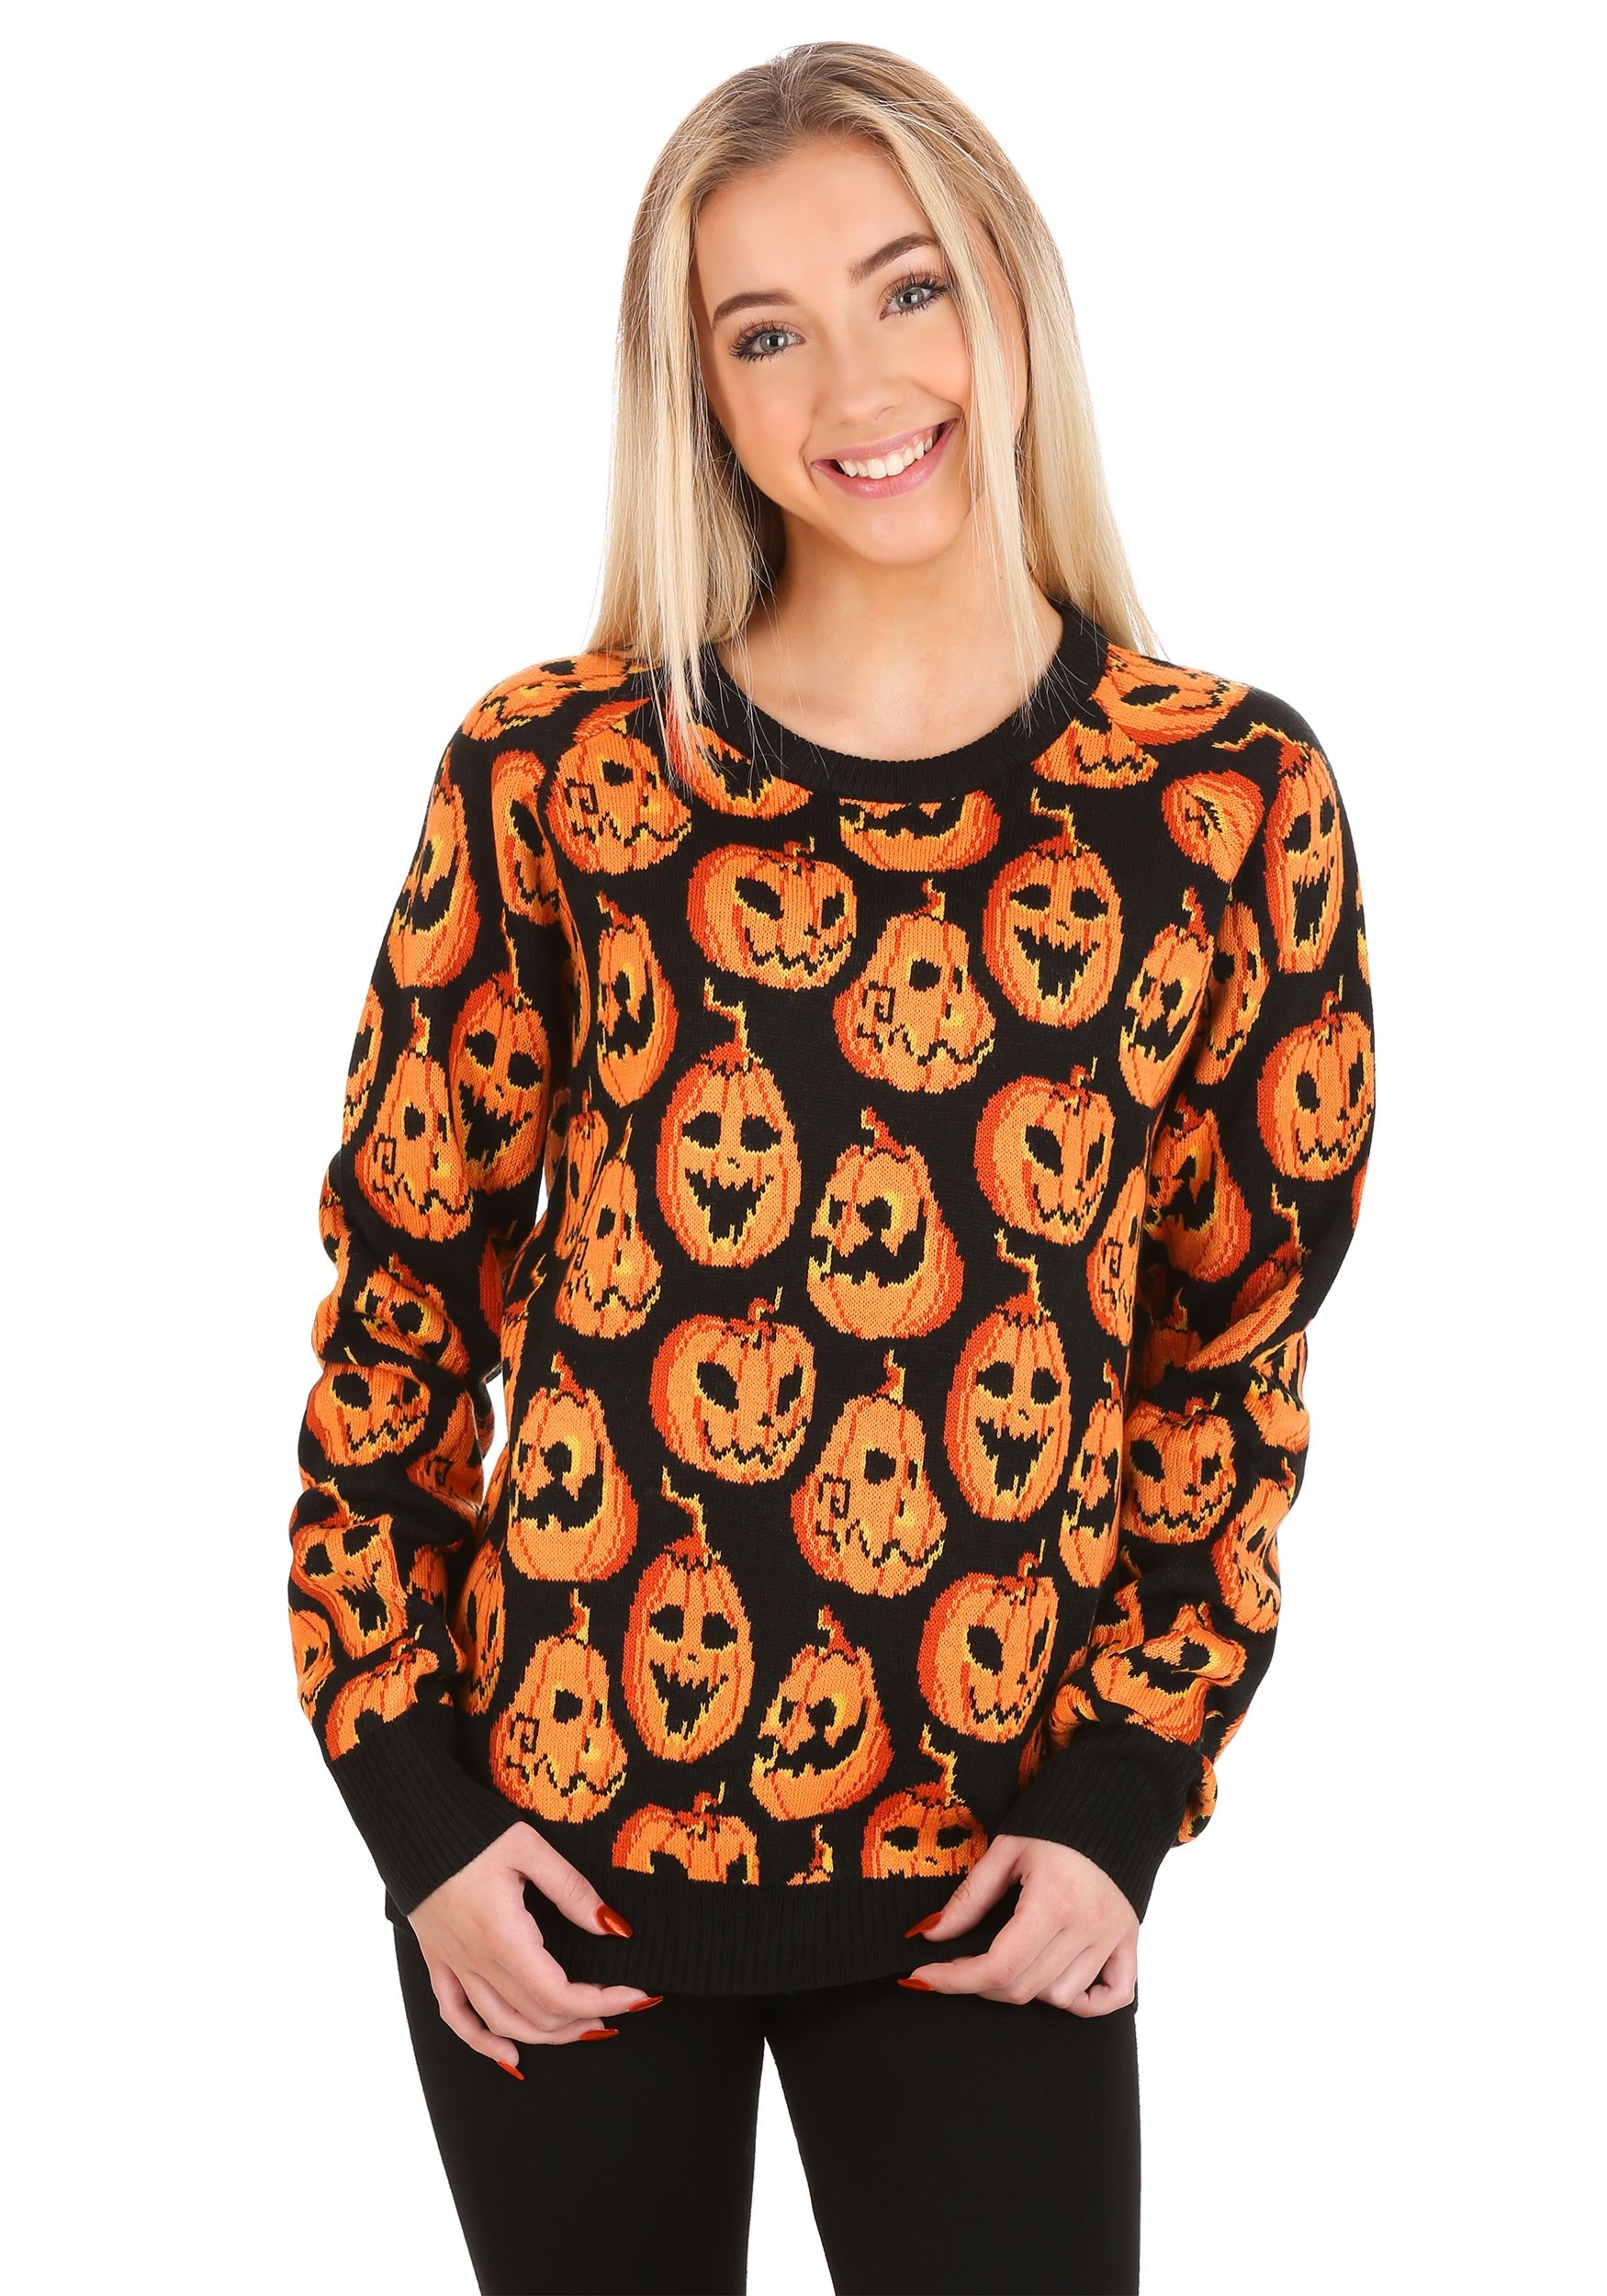 Pumpkin Frenzy Halloween Sweater for Adults